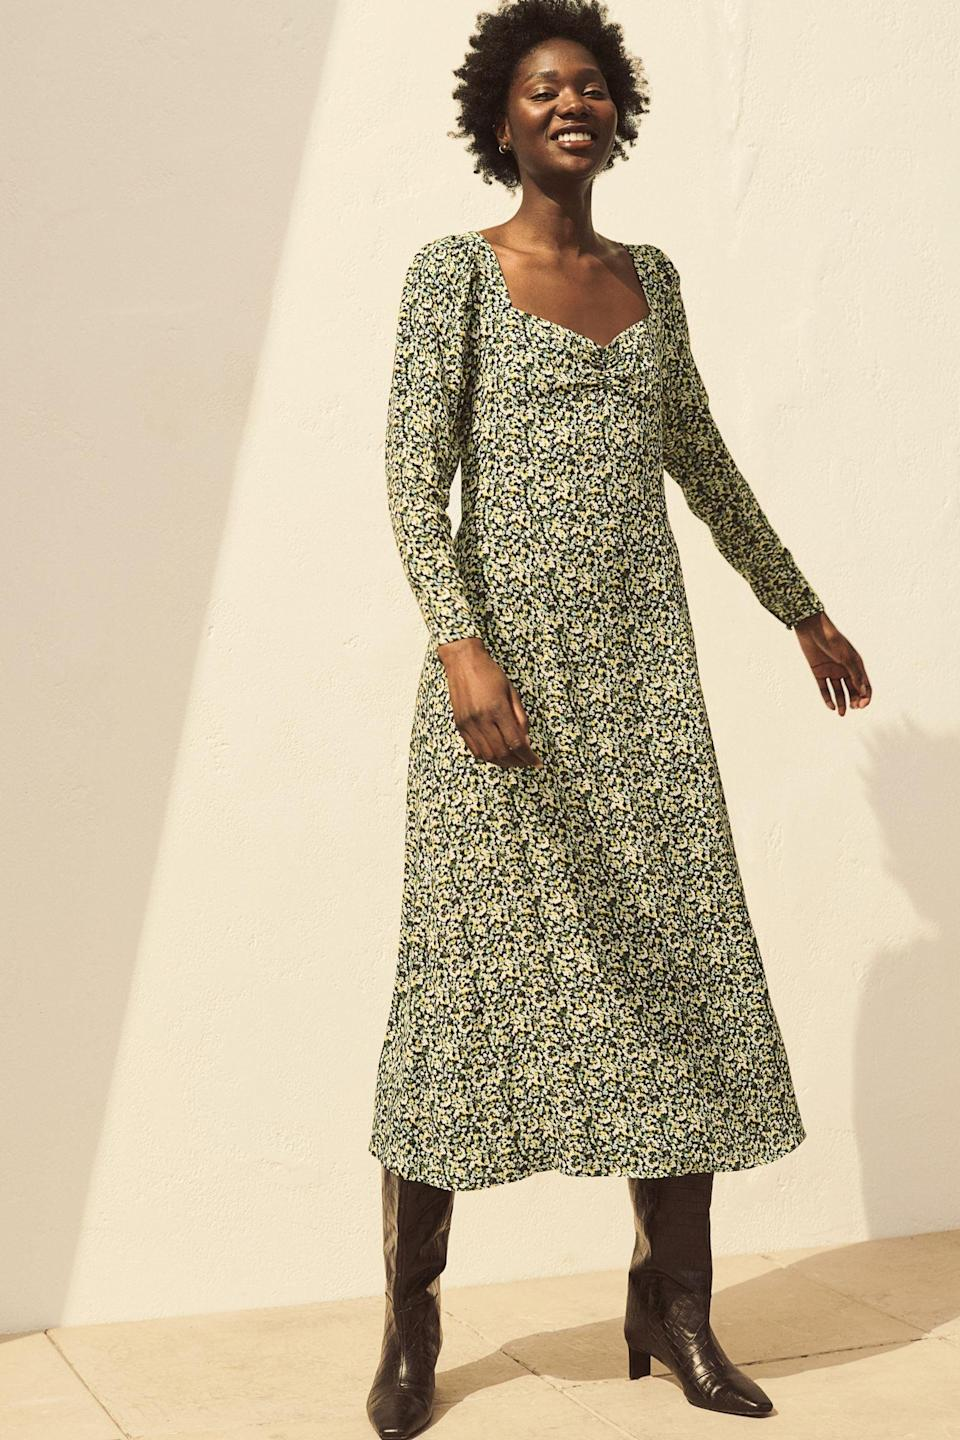 <p>This floral <span>Puff-sleeved Dress</span> ($13, originally $35) is ready for spring.</p>